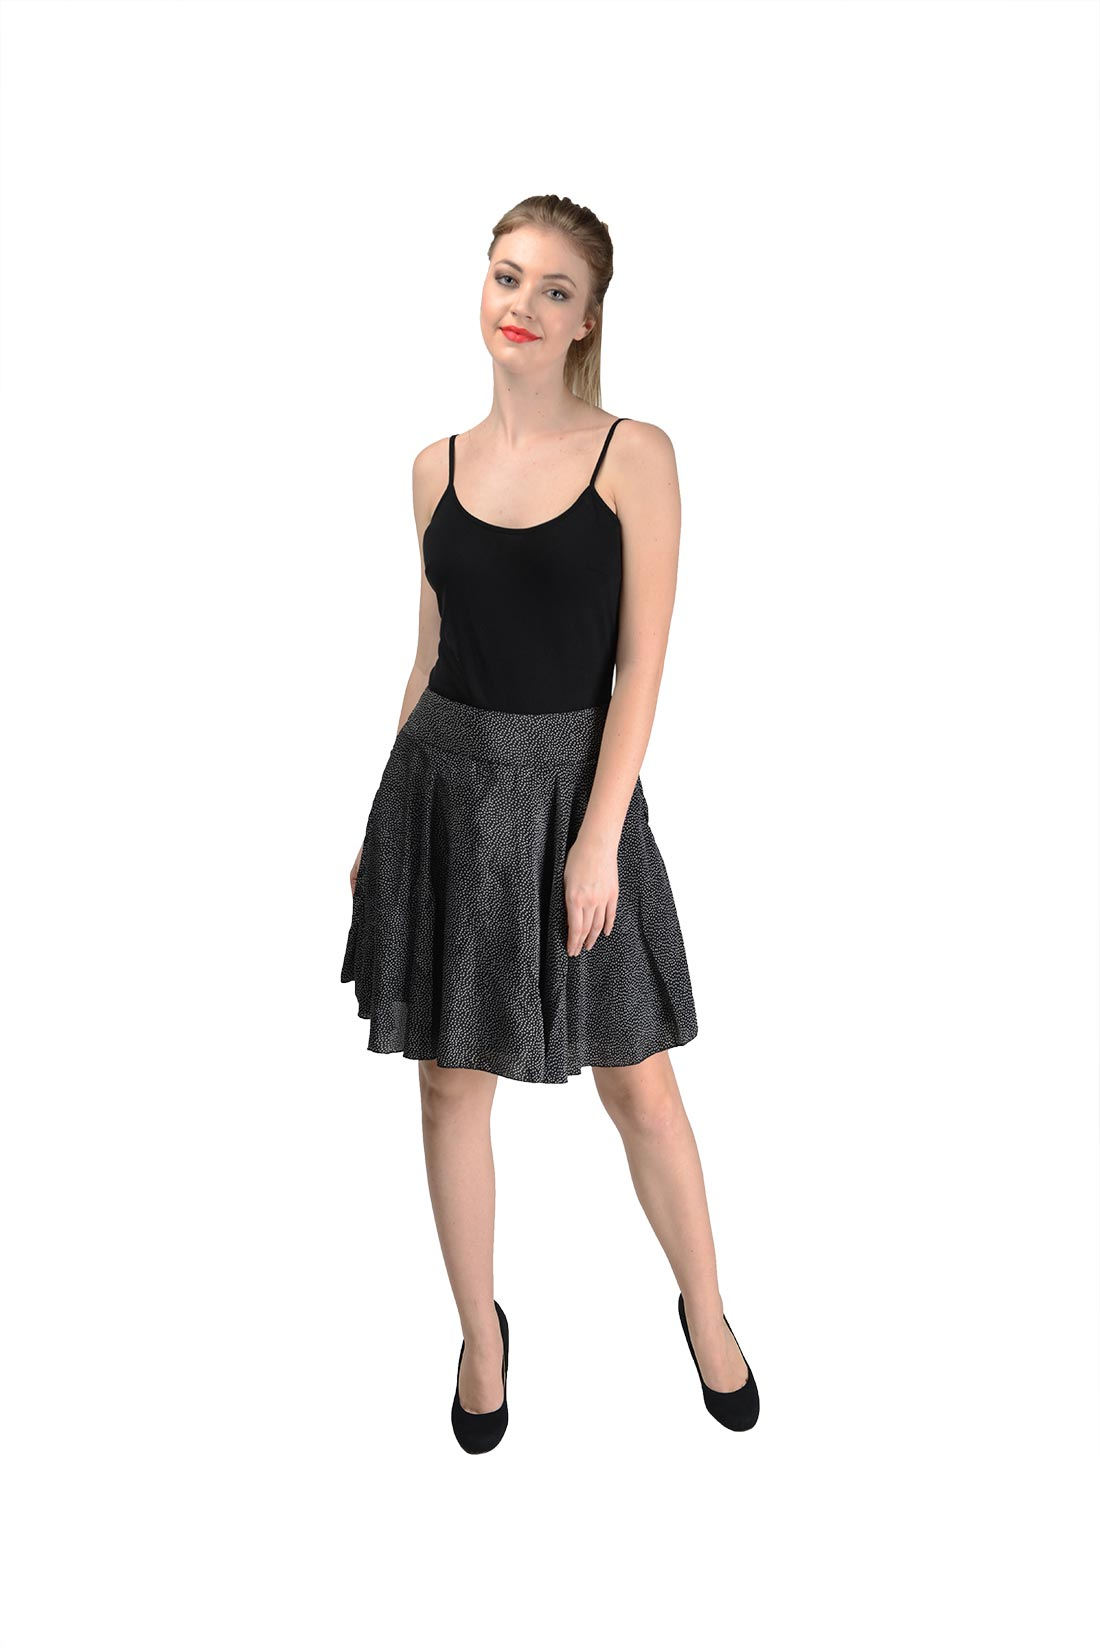 Black Short Skirt For Women By Shipgig